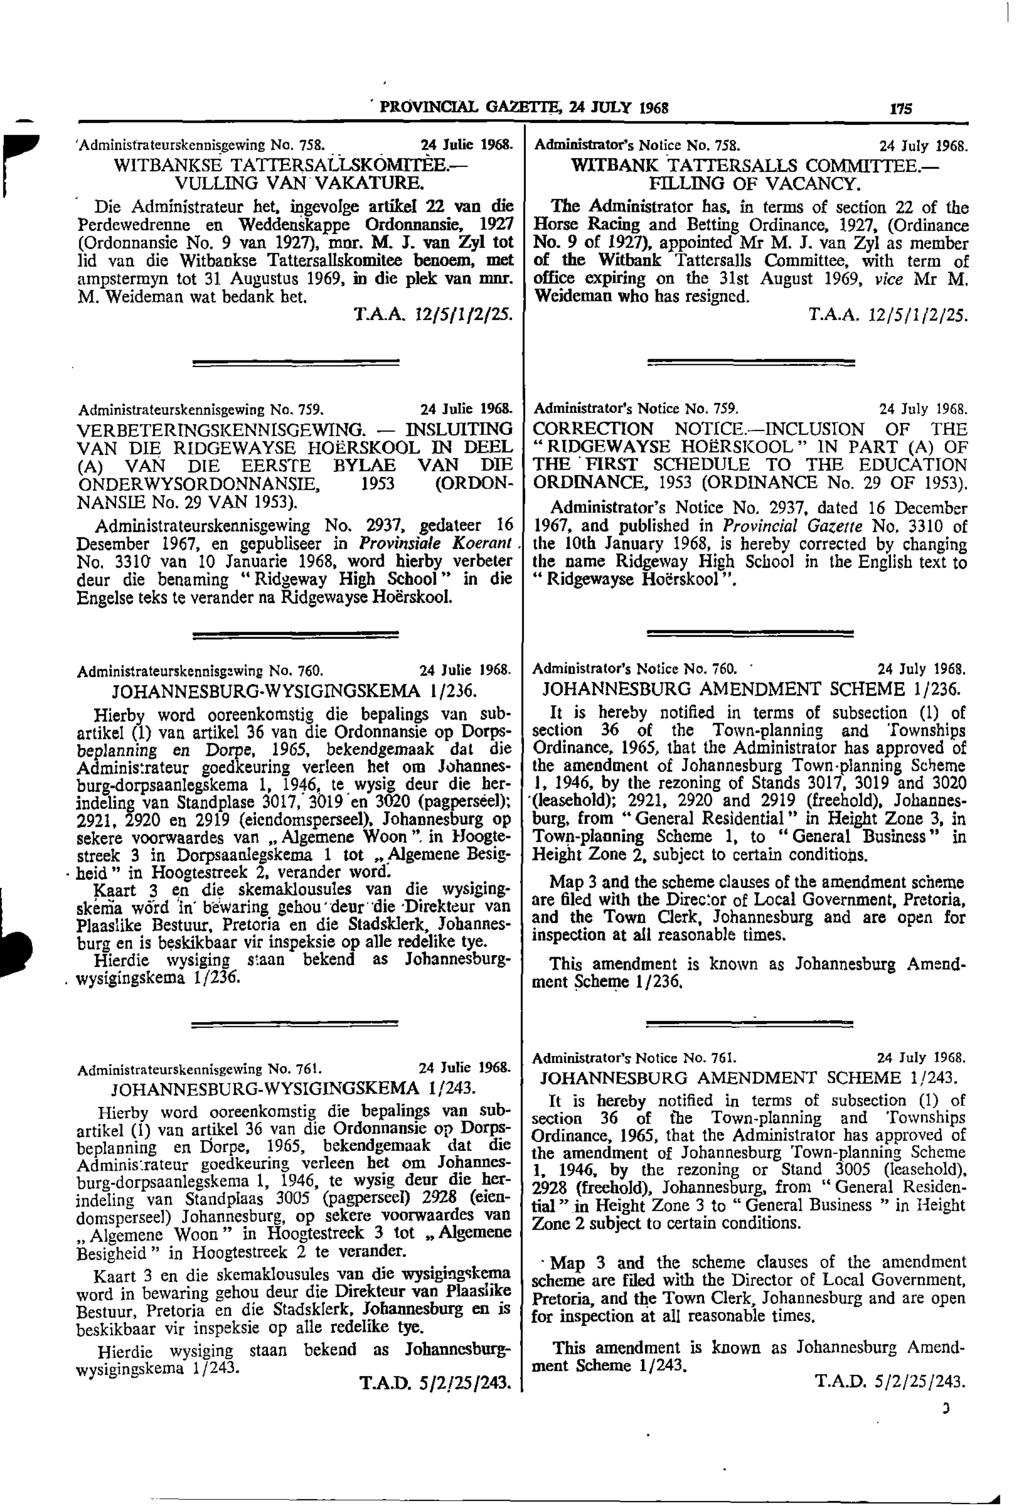 "A PROVINCIAL GAZETTE, 24 JULY 1968 179 111 Administrateurskennisgewing No 758 24 Julie 1968 Administrators Notice No 758 24 July 1969 WITBANKSE TA LIERSALLSKOMTTEEH 1""f""1 TATTERSALLS COMMI1 IEE"